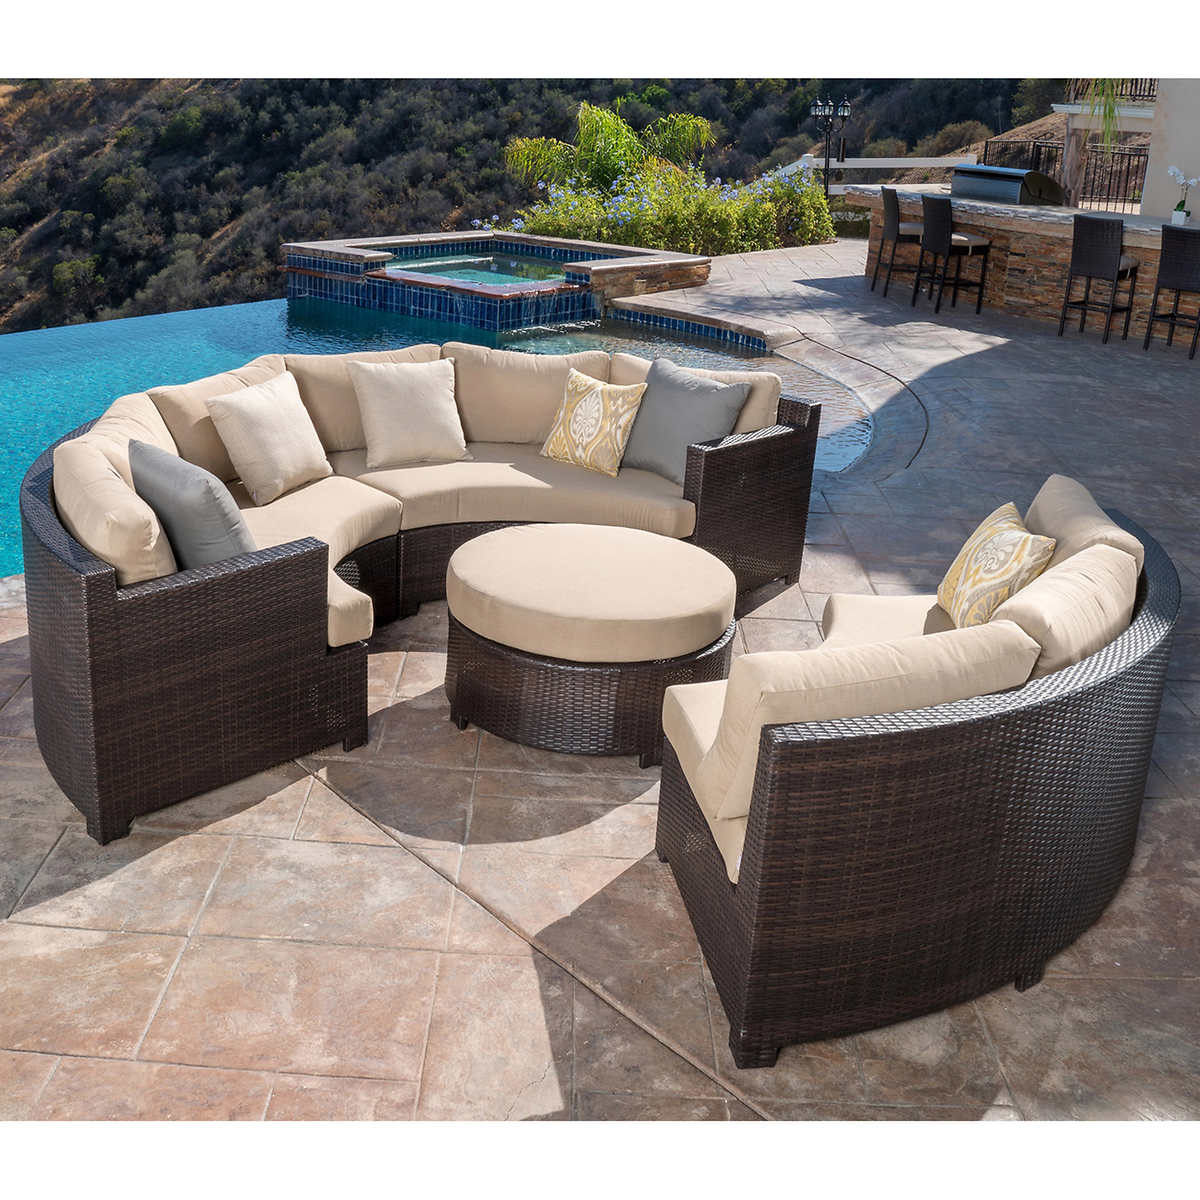 Costco outdoor sofa set hereo sofa for Outdoor sectional sofa costco